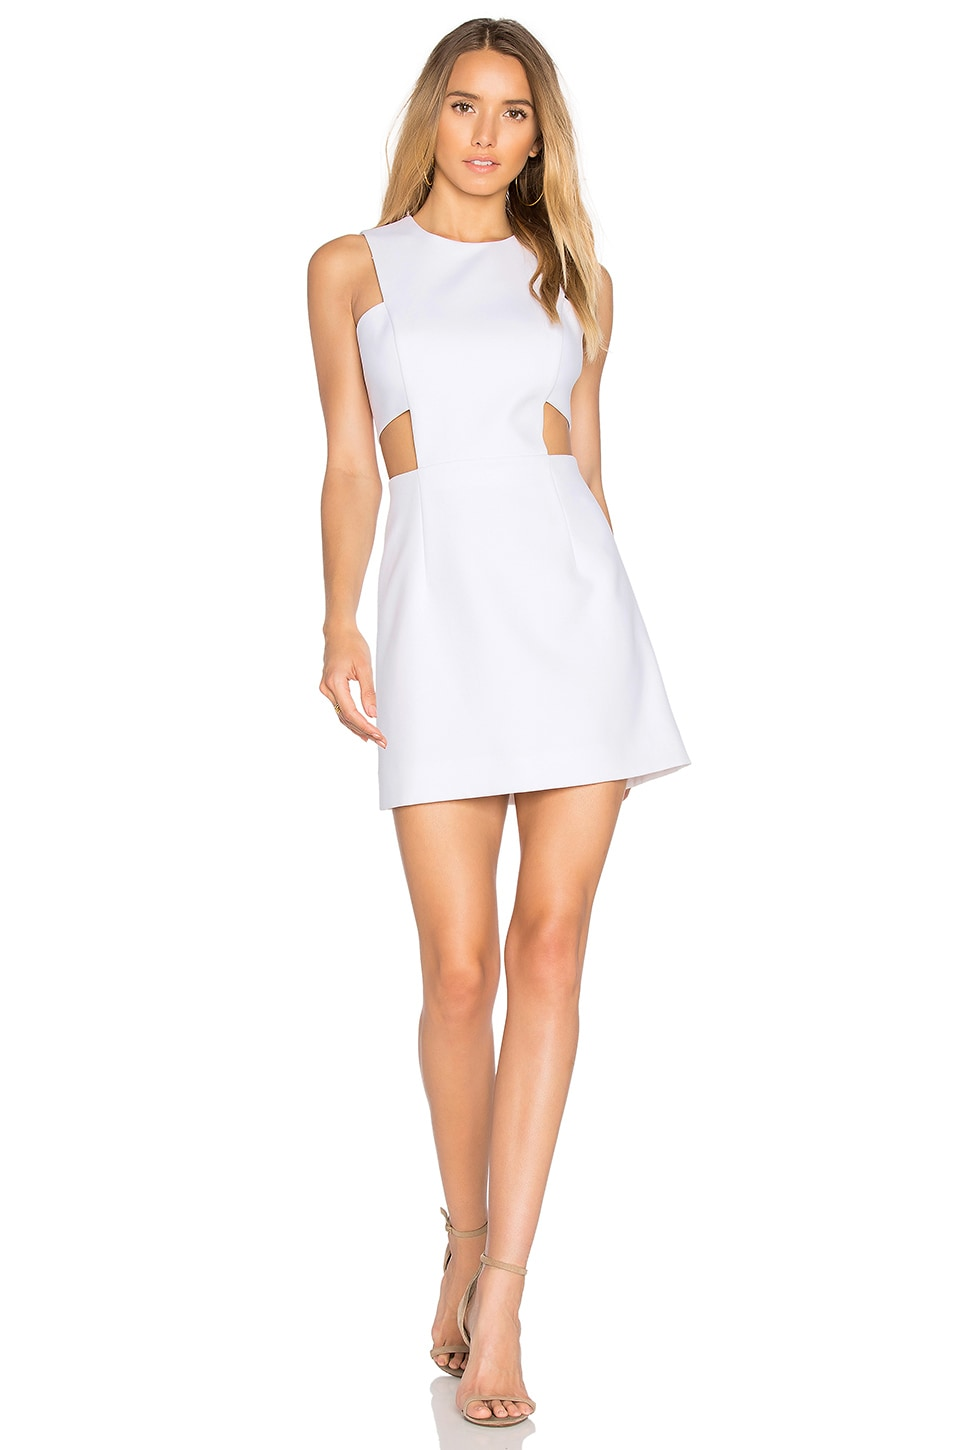 MILLY Cut Out Mini Dress in White